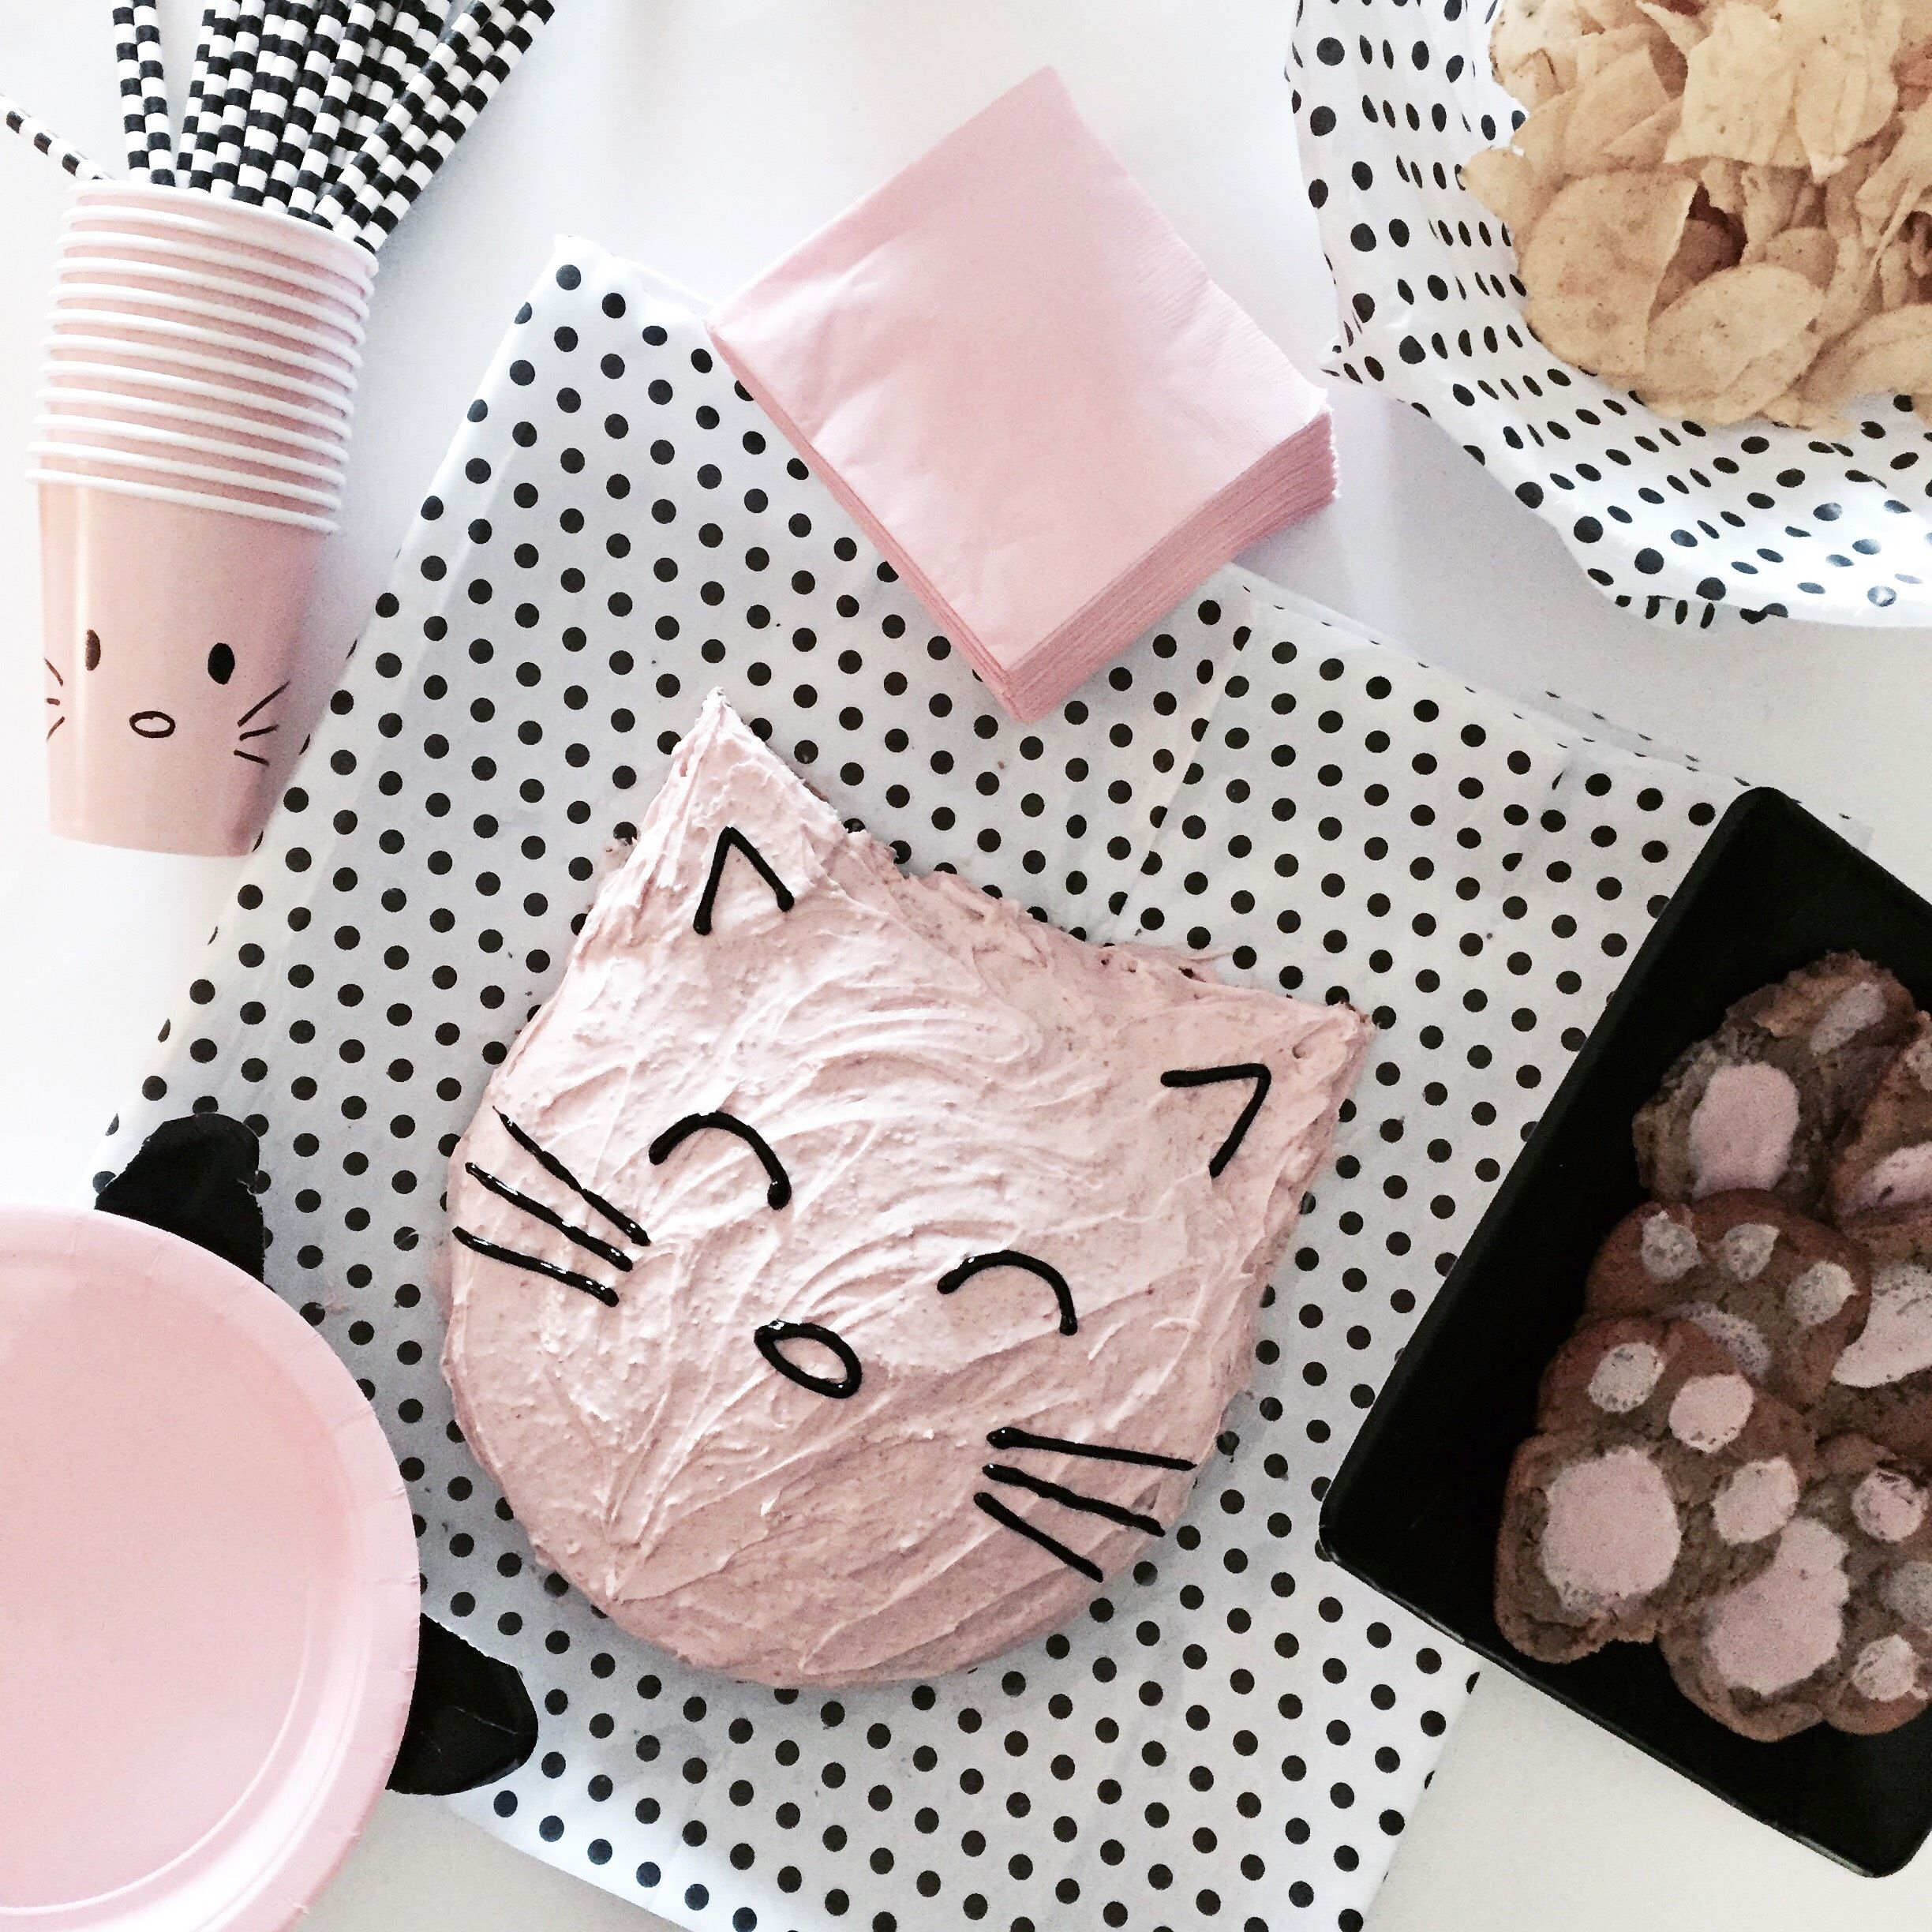 DIY Kitty Cat Themed Birthday Party - Bloom & Clementine